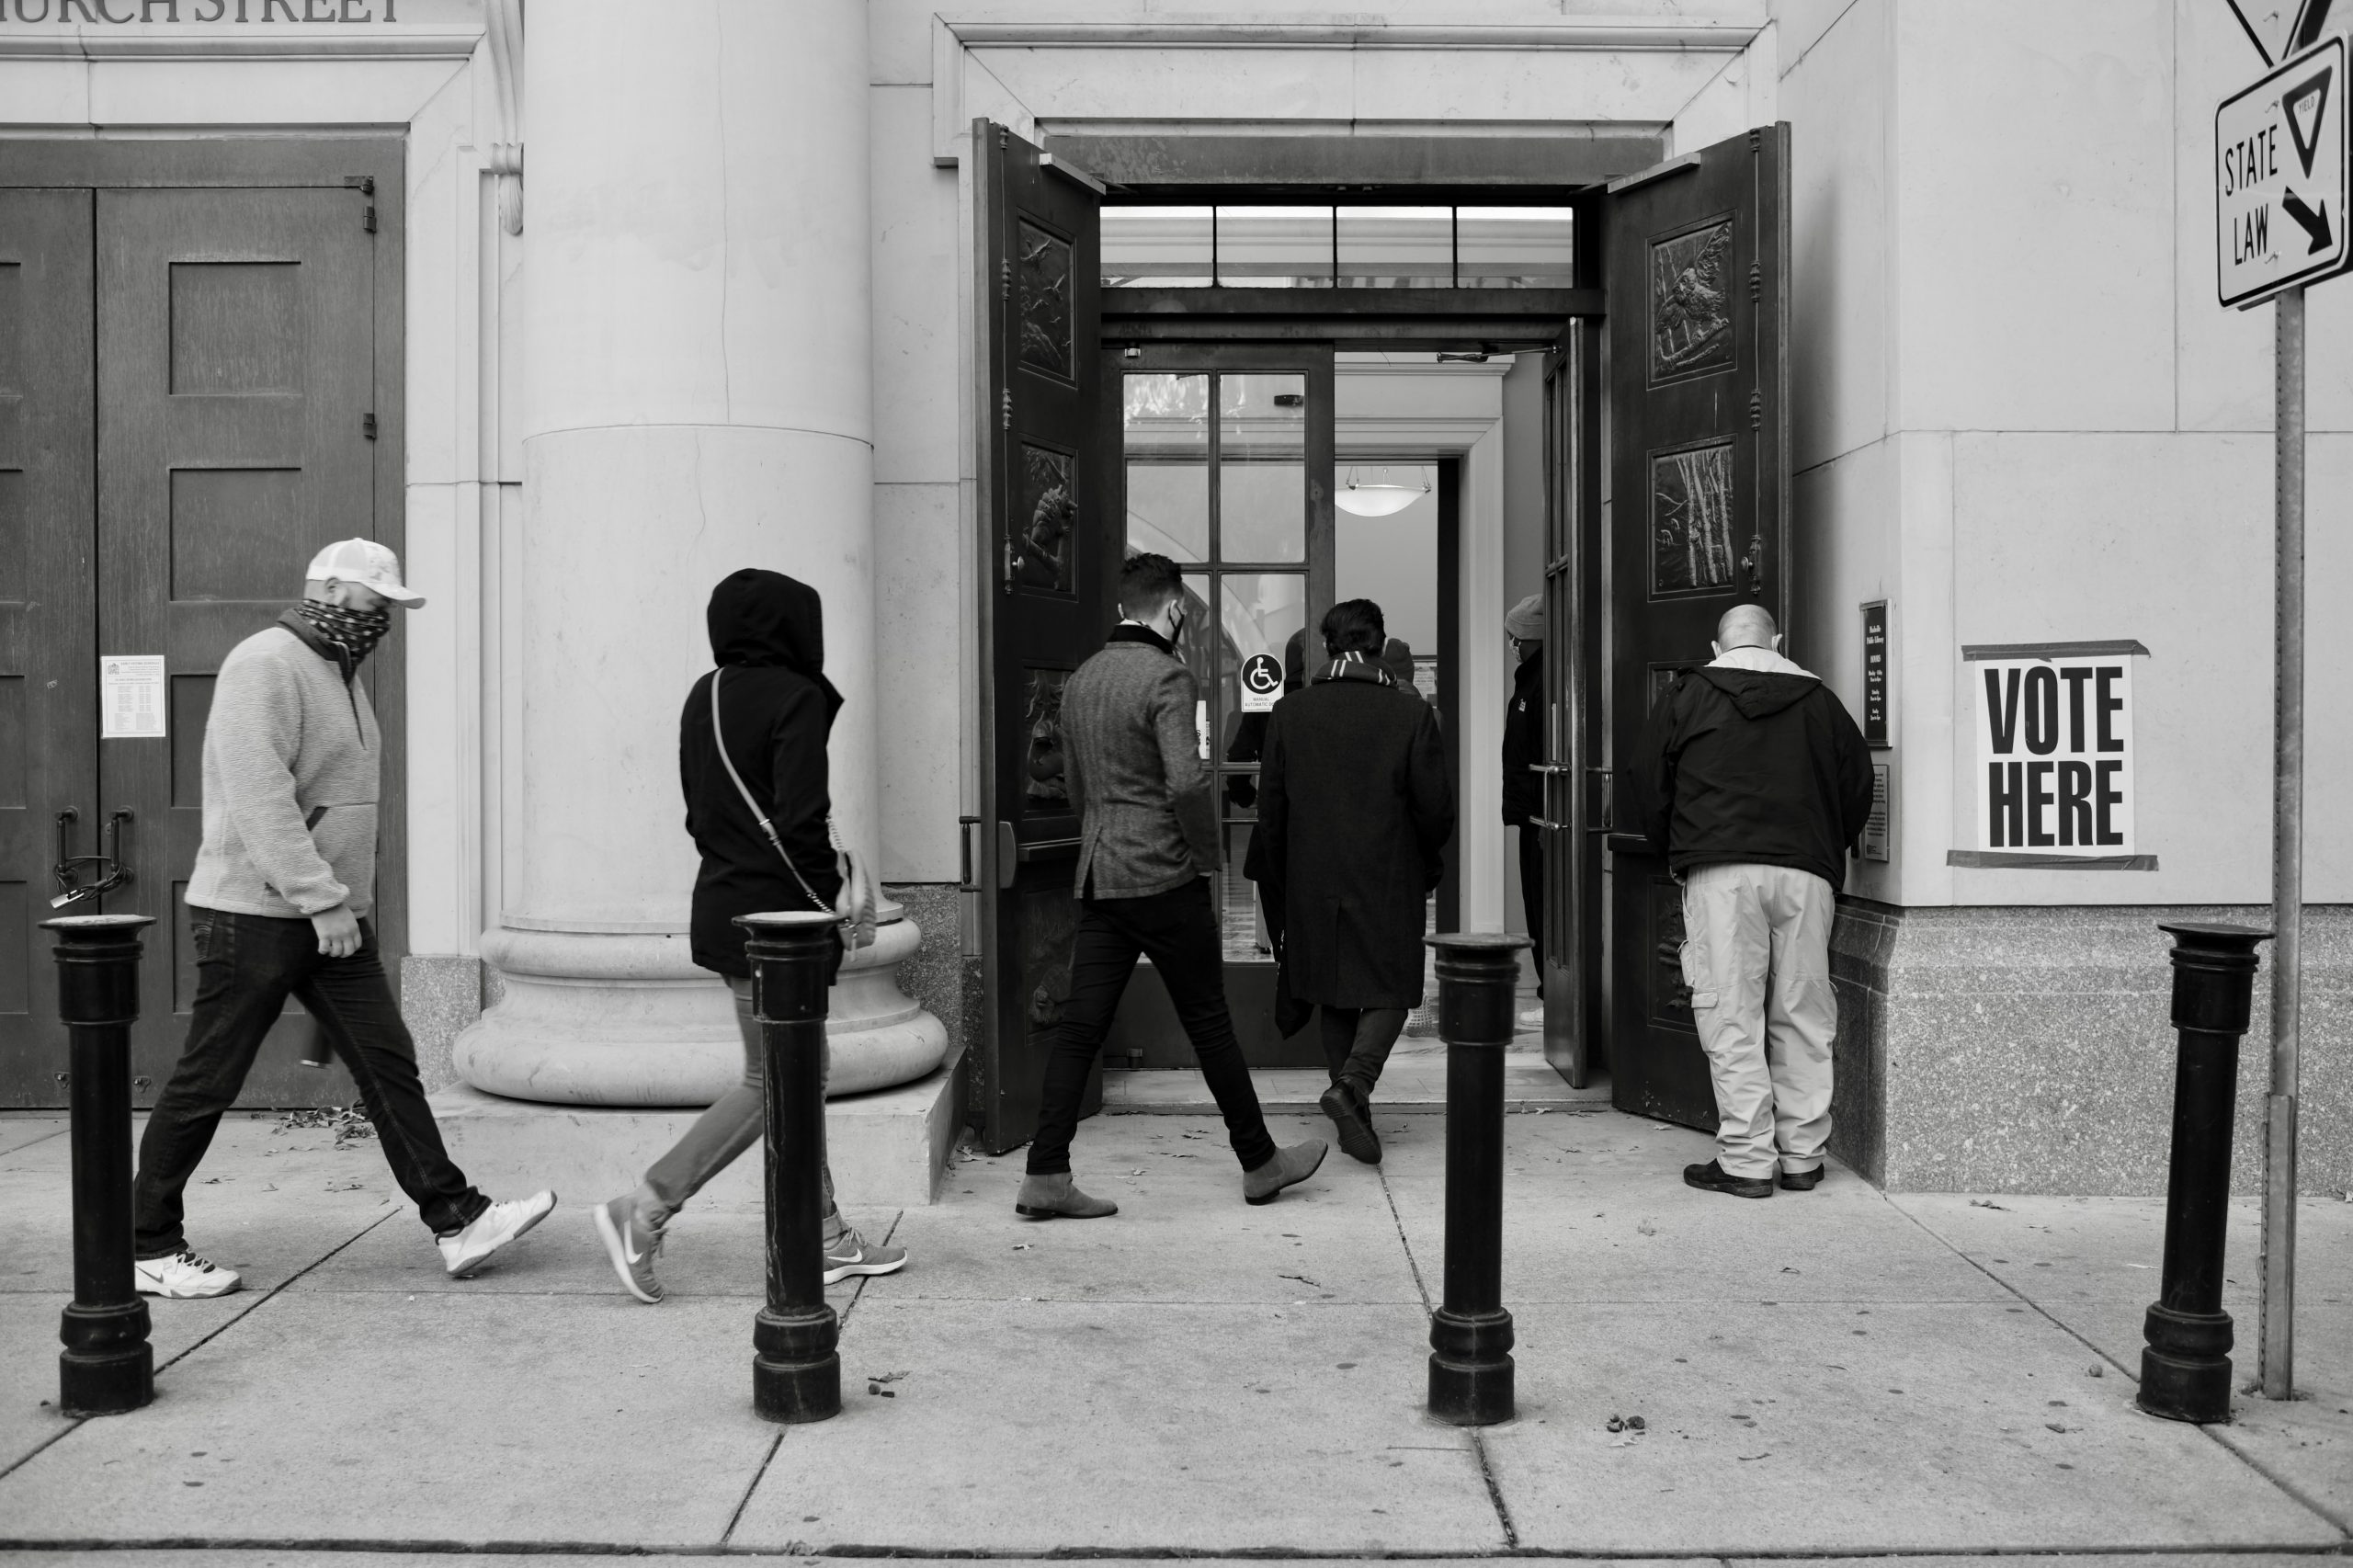 A security guard opens the doors to the Dallas Seymour, 25, waits on line for the polls to open to cast her vote at the Downtown Nashville Public Library polling location. November 3, 2020. 6:47am. (Photo: Ray Di Pietro)